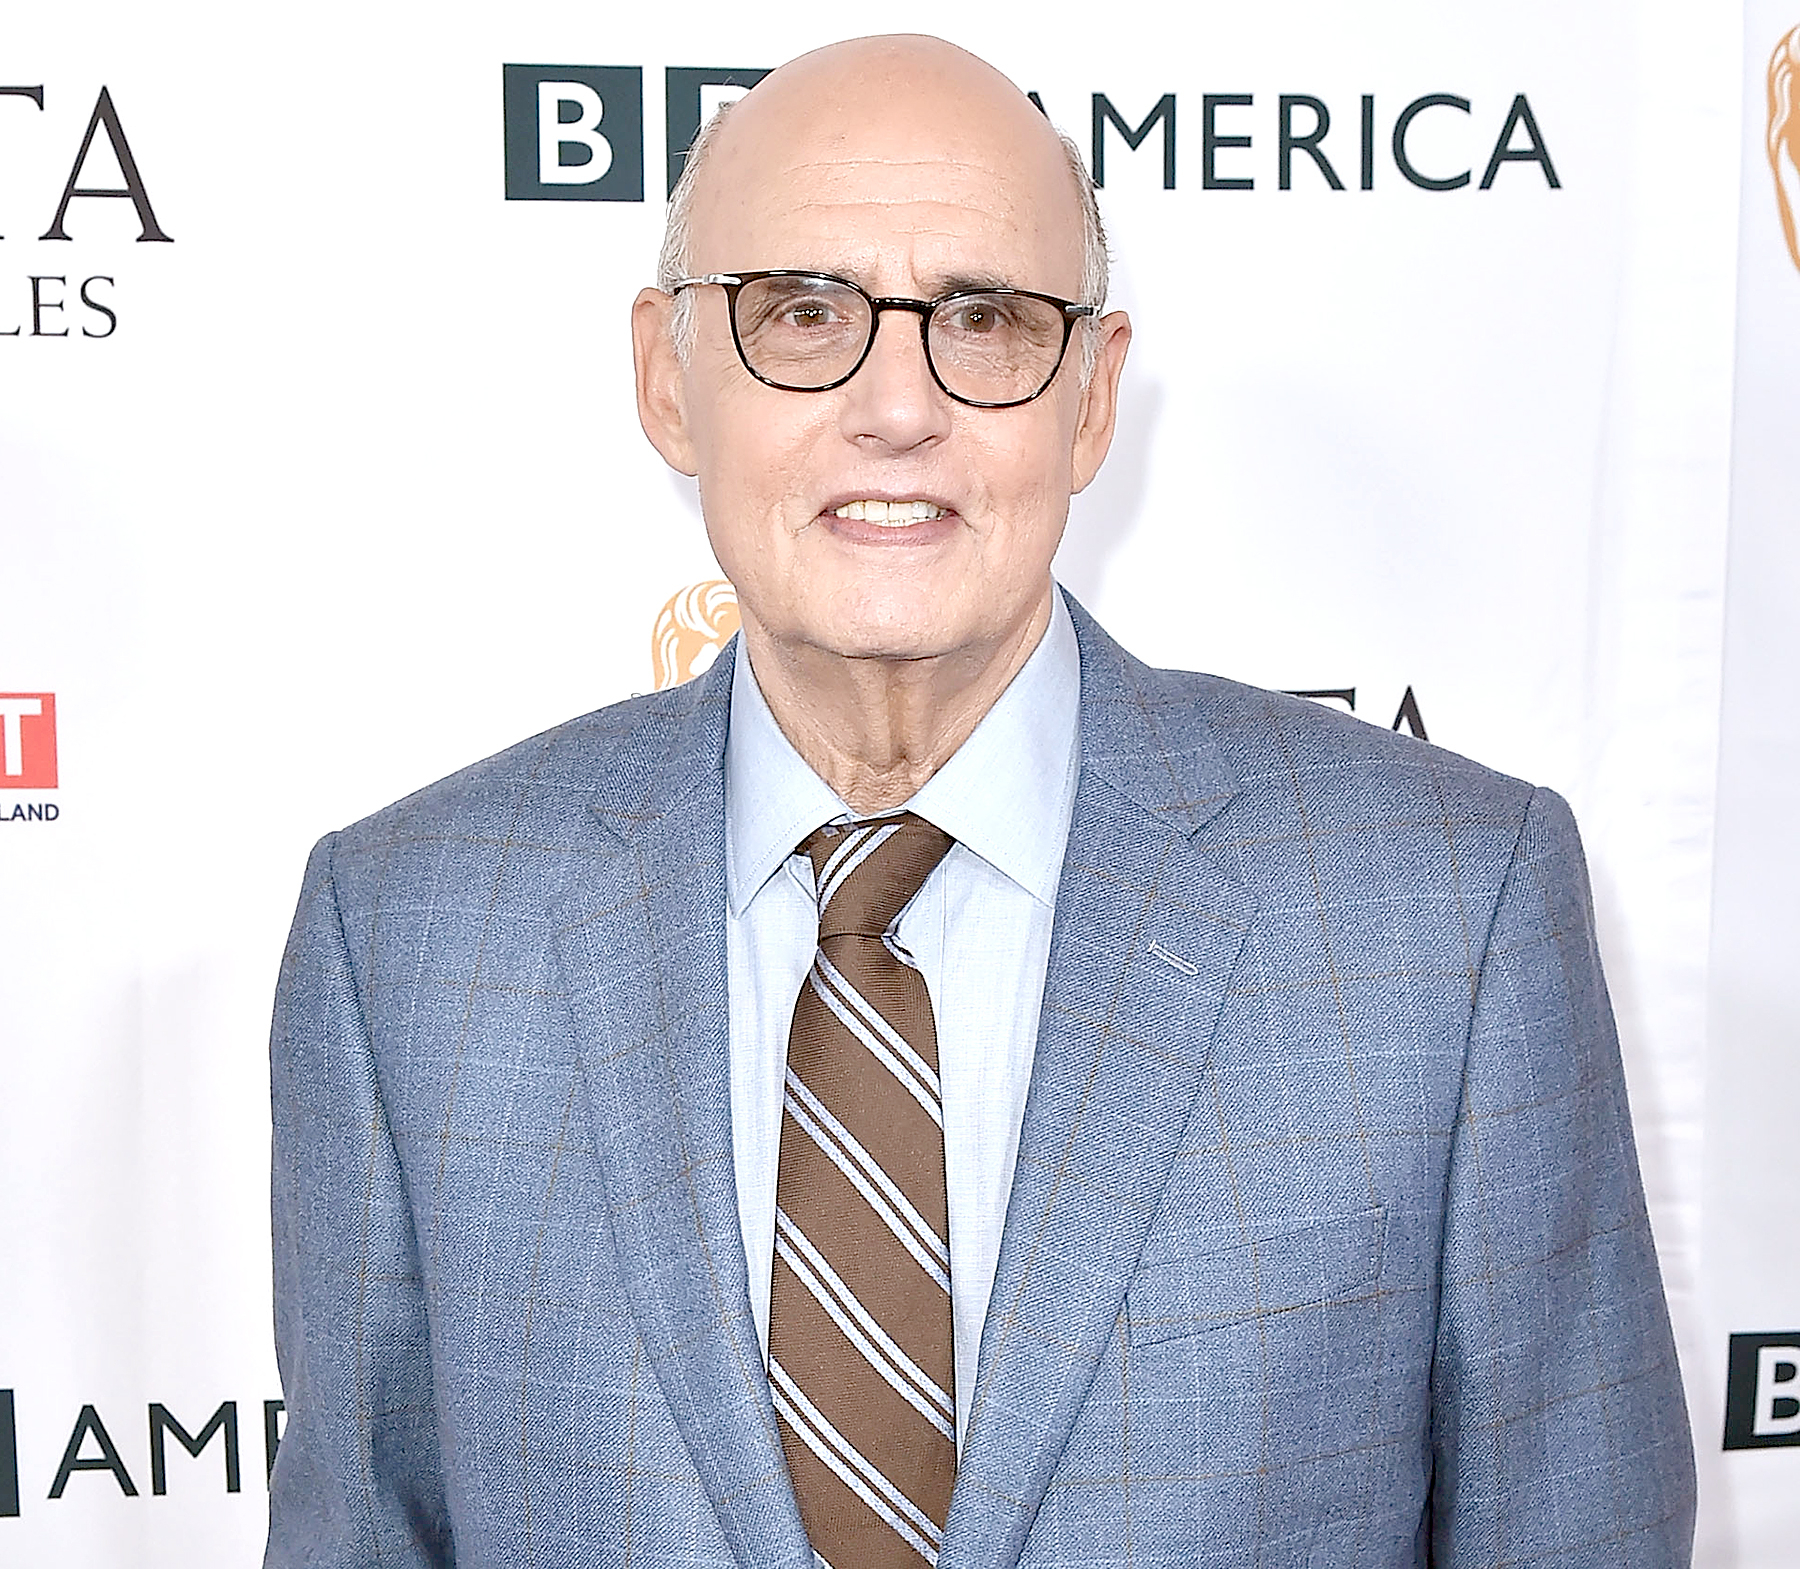 Jeffery Tambor attends the BBC America BAFTA Los Angeles TV Tea Party 2017 - Arrivals at The Beverly Hilton Hotel on September 16, 2017 in Beverly Hills, California.